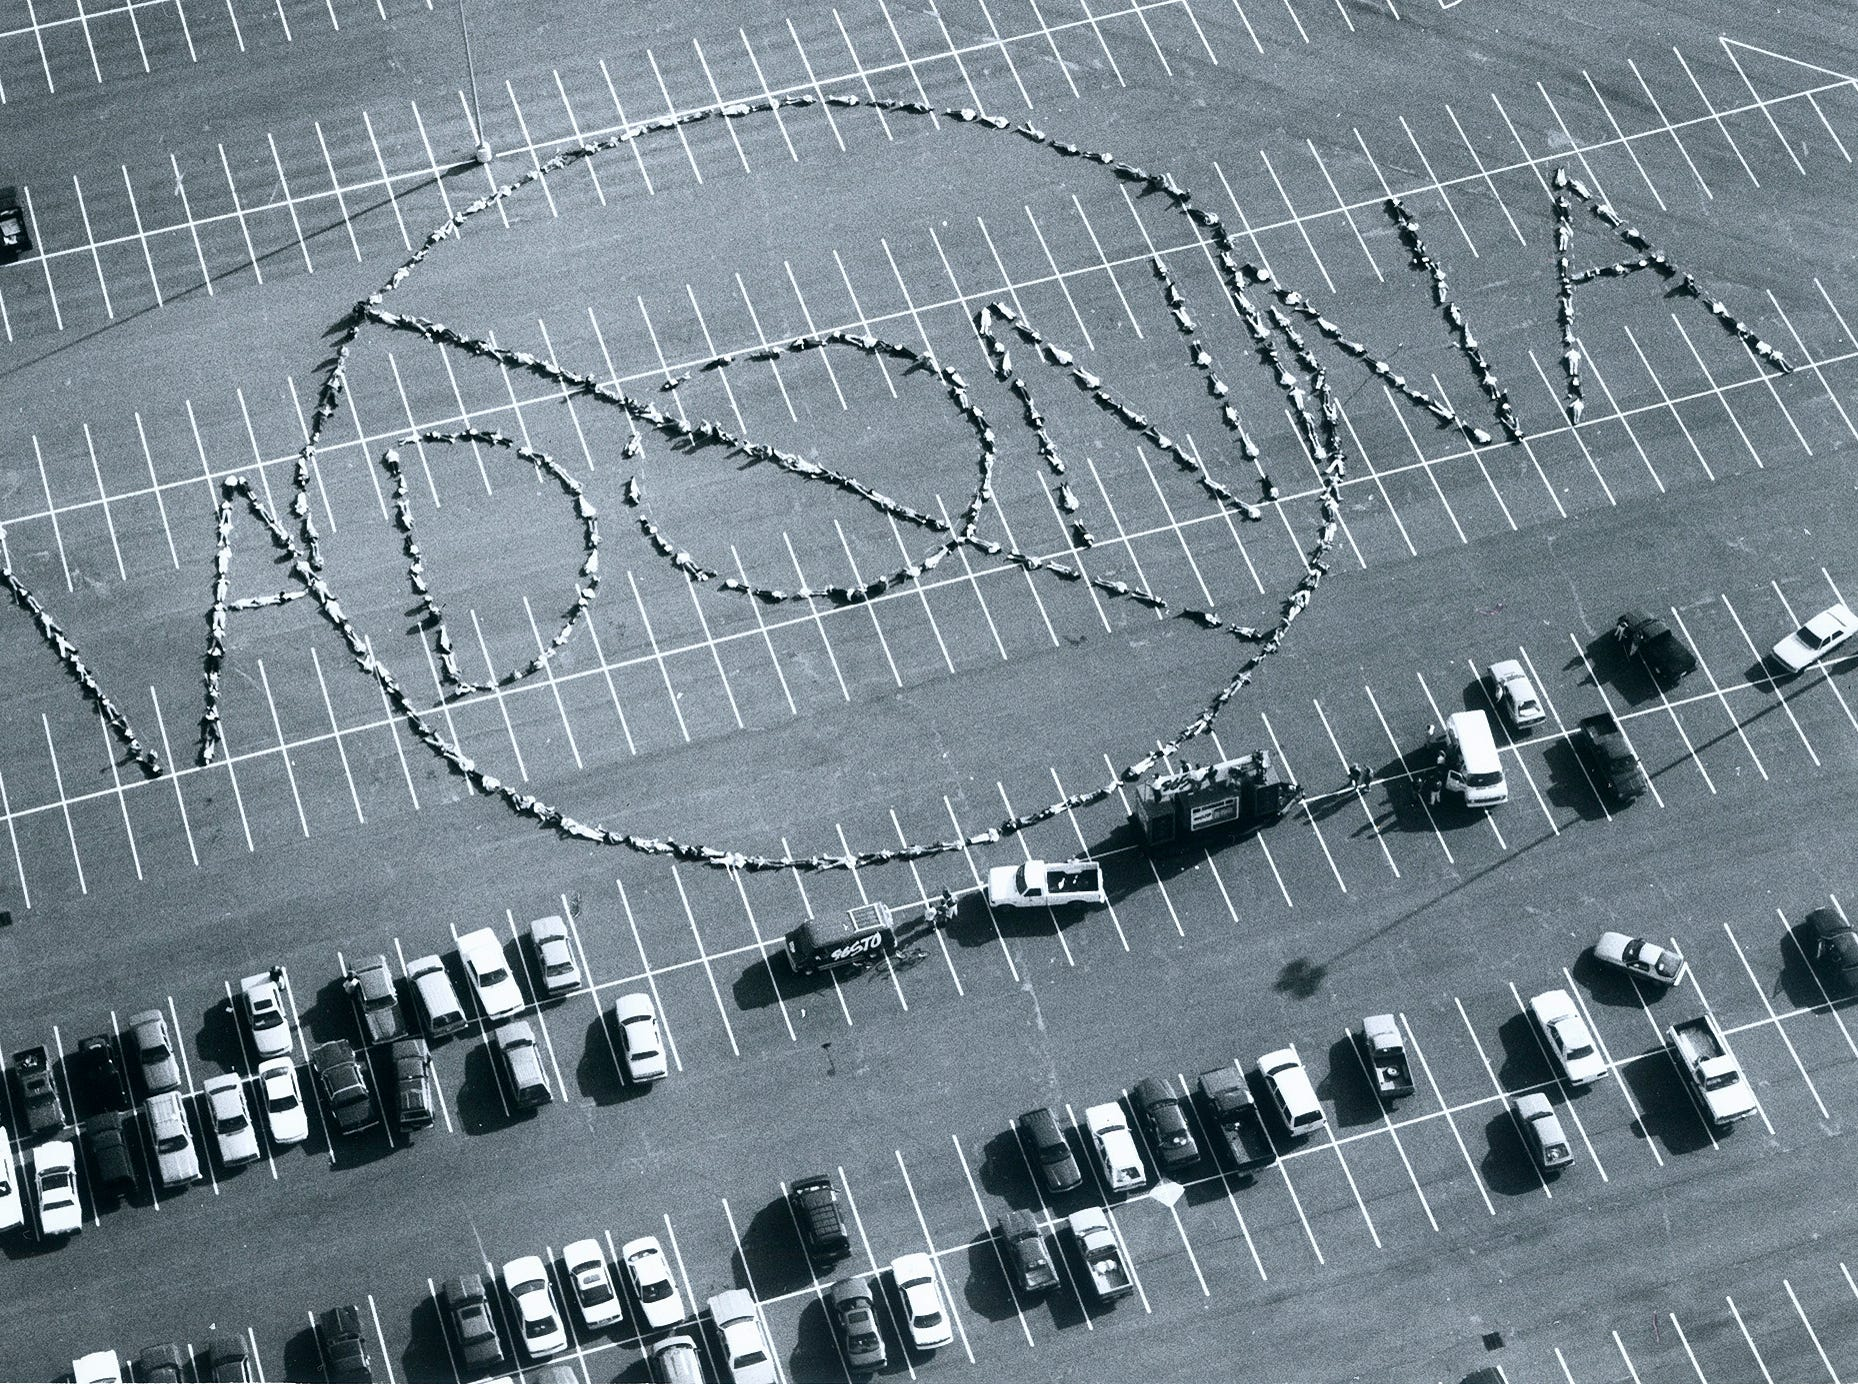 Approximately 300 residents of Evansville and the Tri-State showed up Saturday afternoon to spell out a message to Madonna on the parking lot of Roberts Stadium. The human message was prompted by the non flattering remarks that Madonna made about the city of Evansville in a recent TV Guide interview.